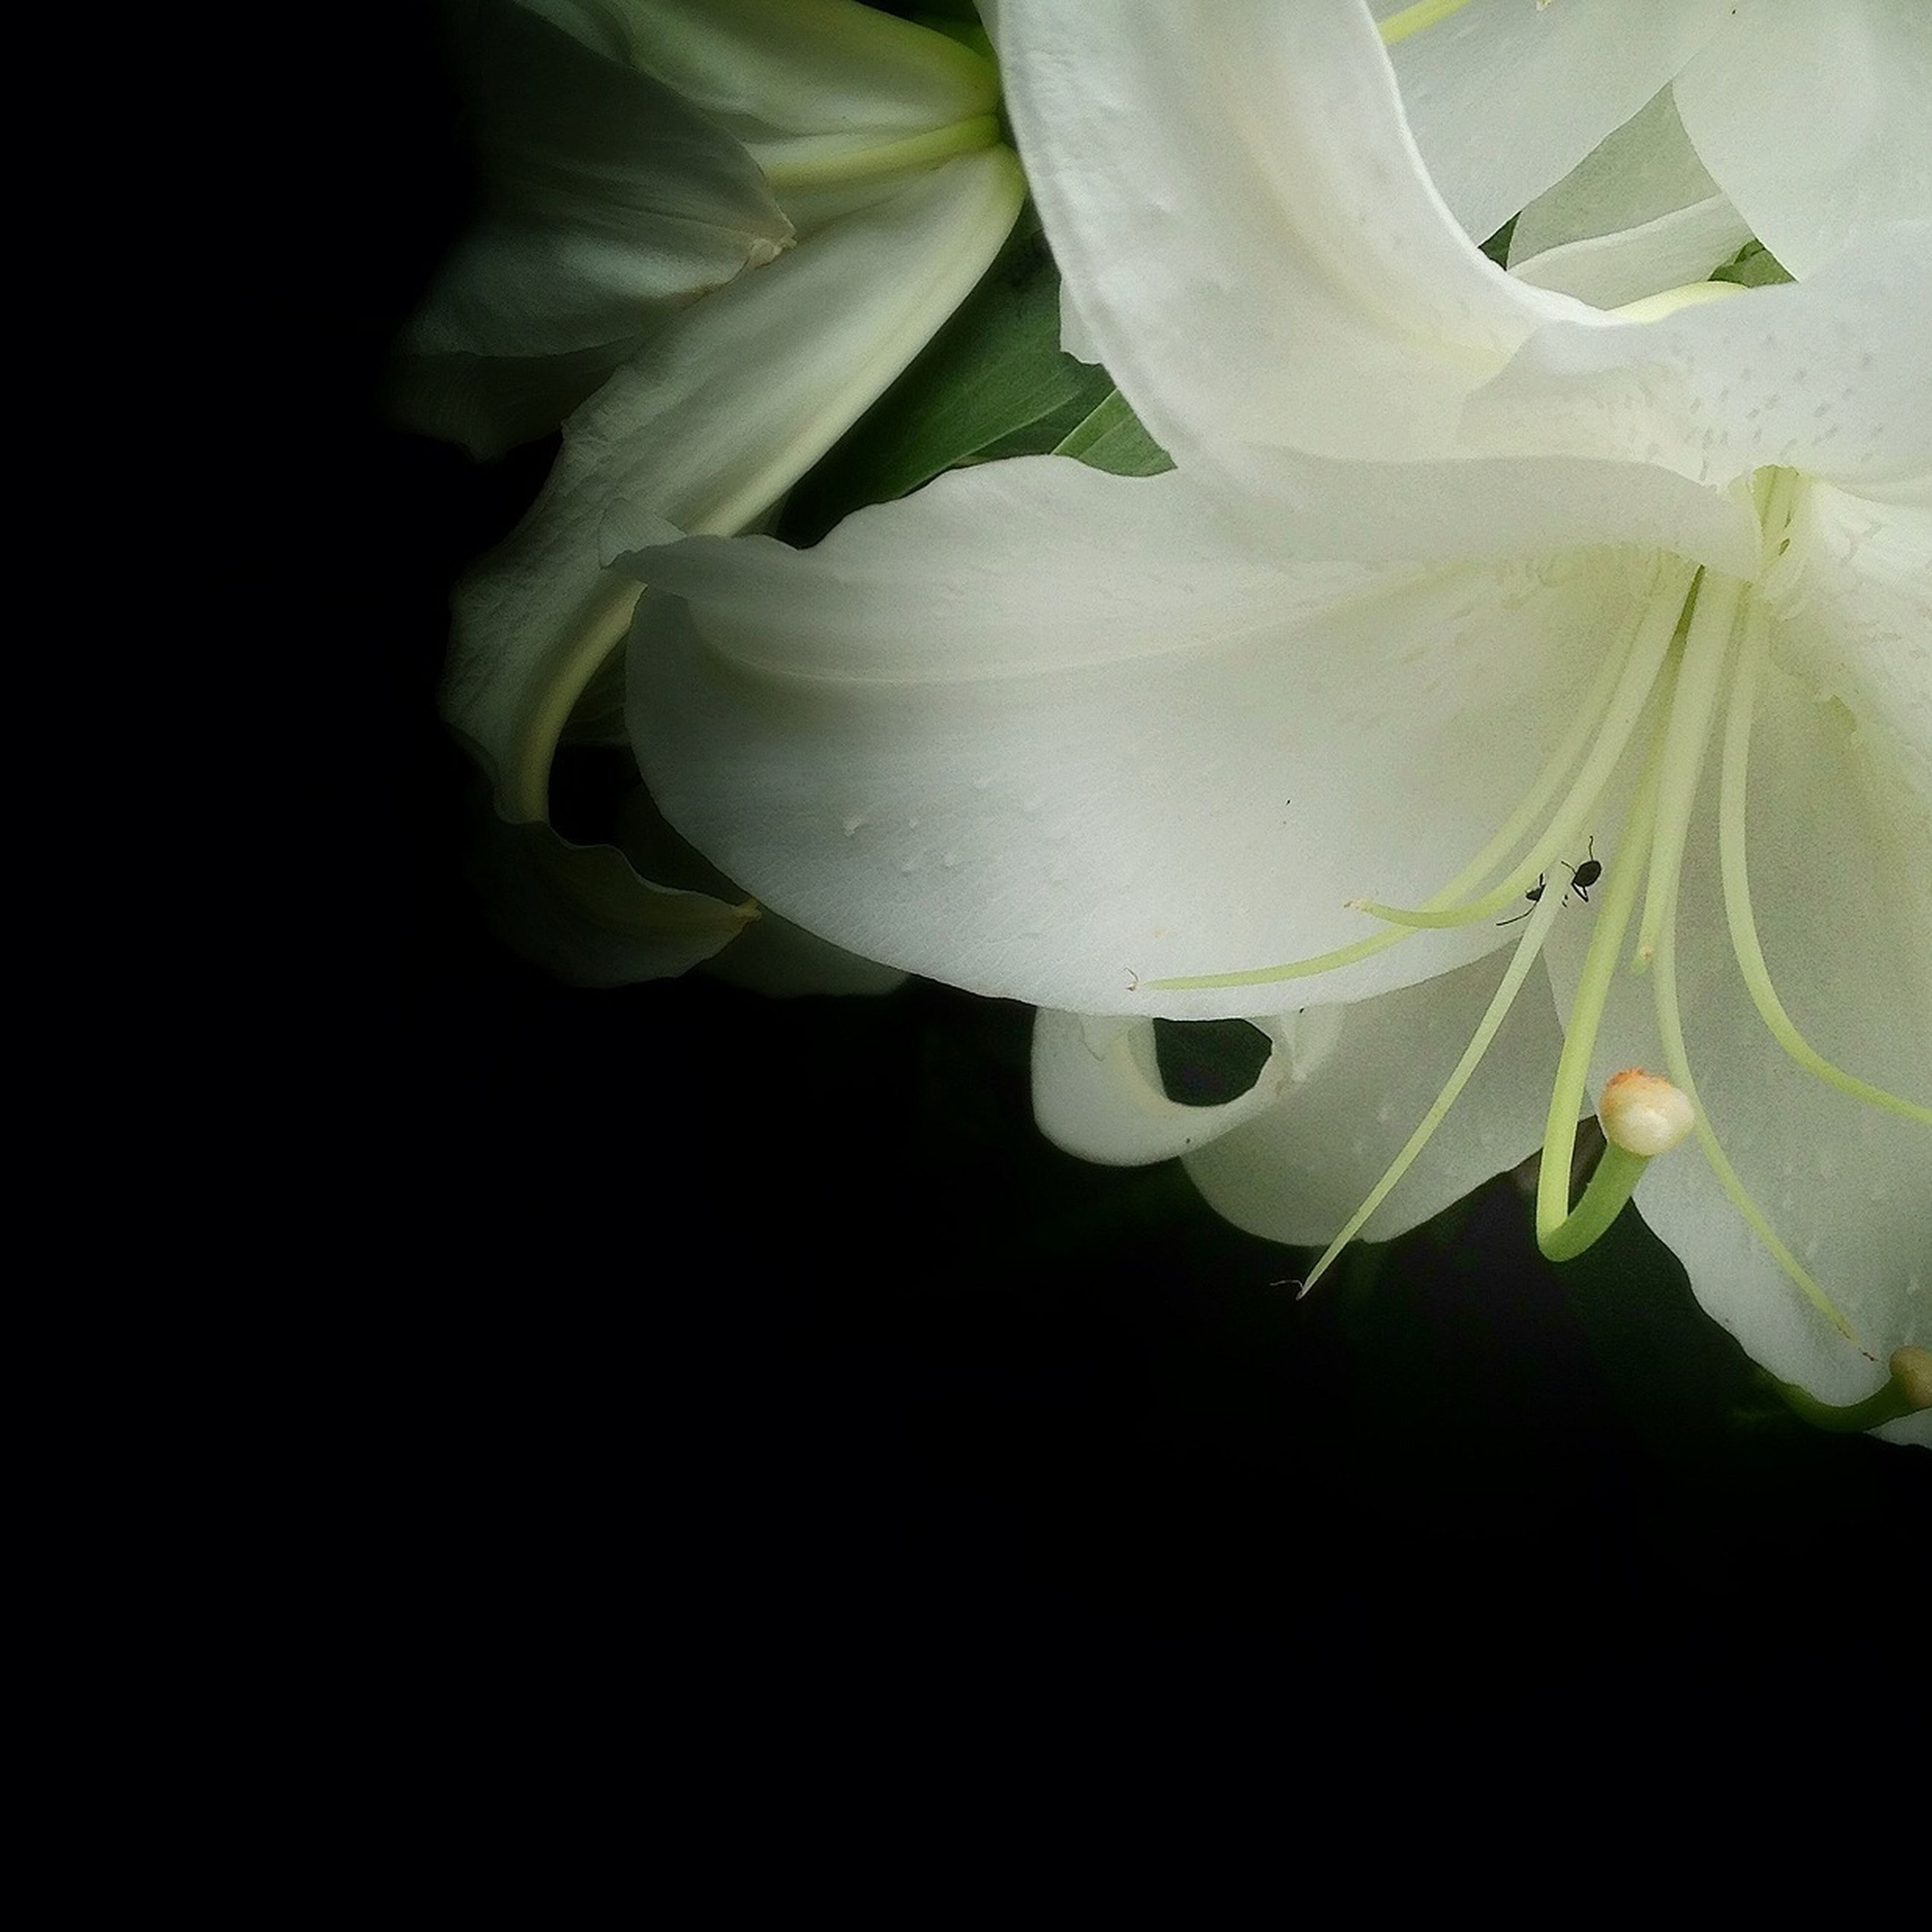 flower, black background, petal, studio shot, fragility, close-up, white color, freshness, growth, flower head, beauty in nature, plant, nature, leaf, copy space, white, no people, single flower, night, stem